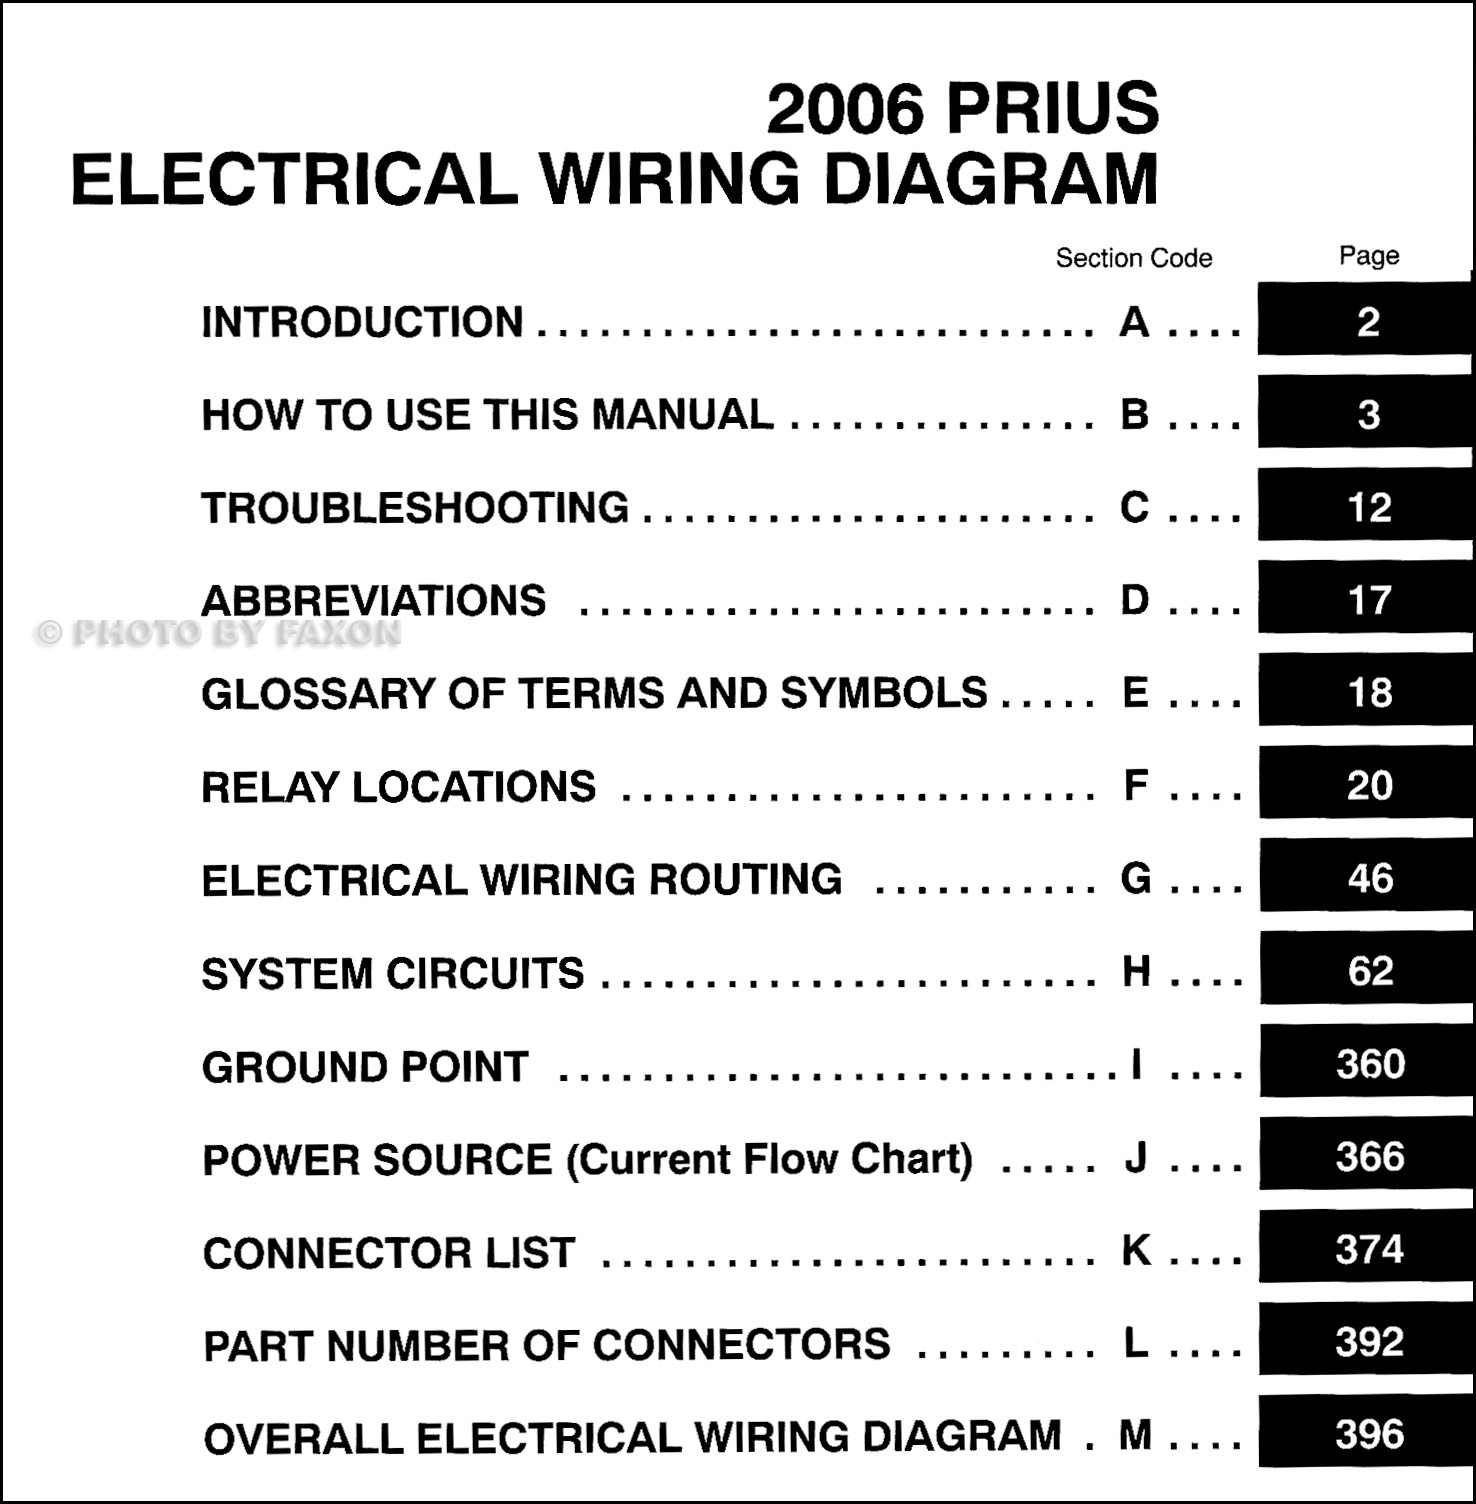 2006 toyota prius electrical wiring diagram toyota prius electrical wiring diagram